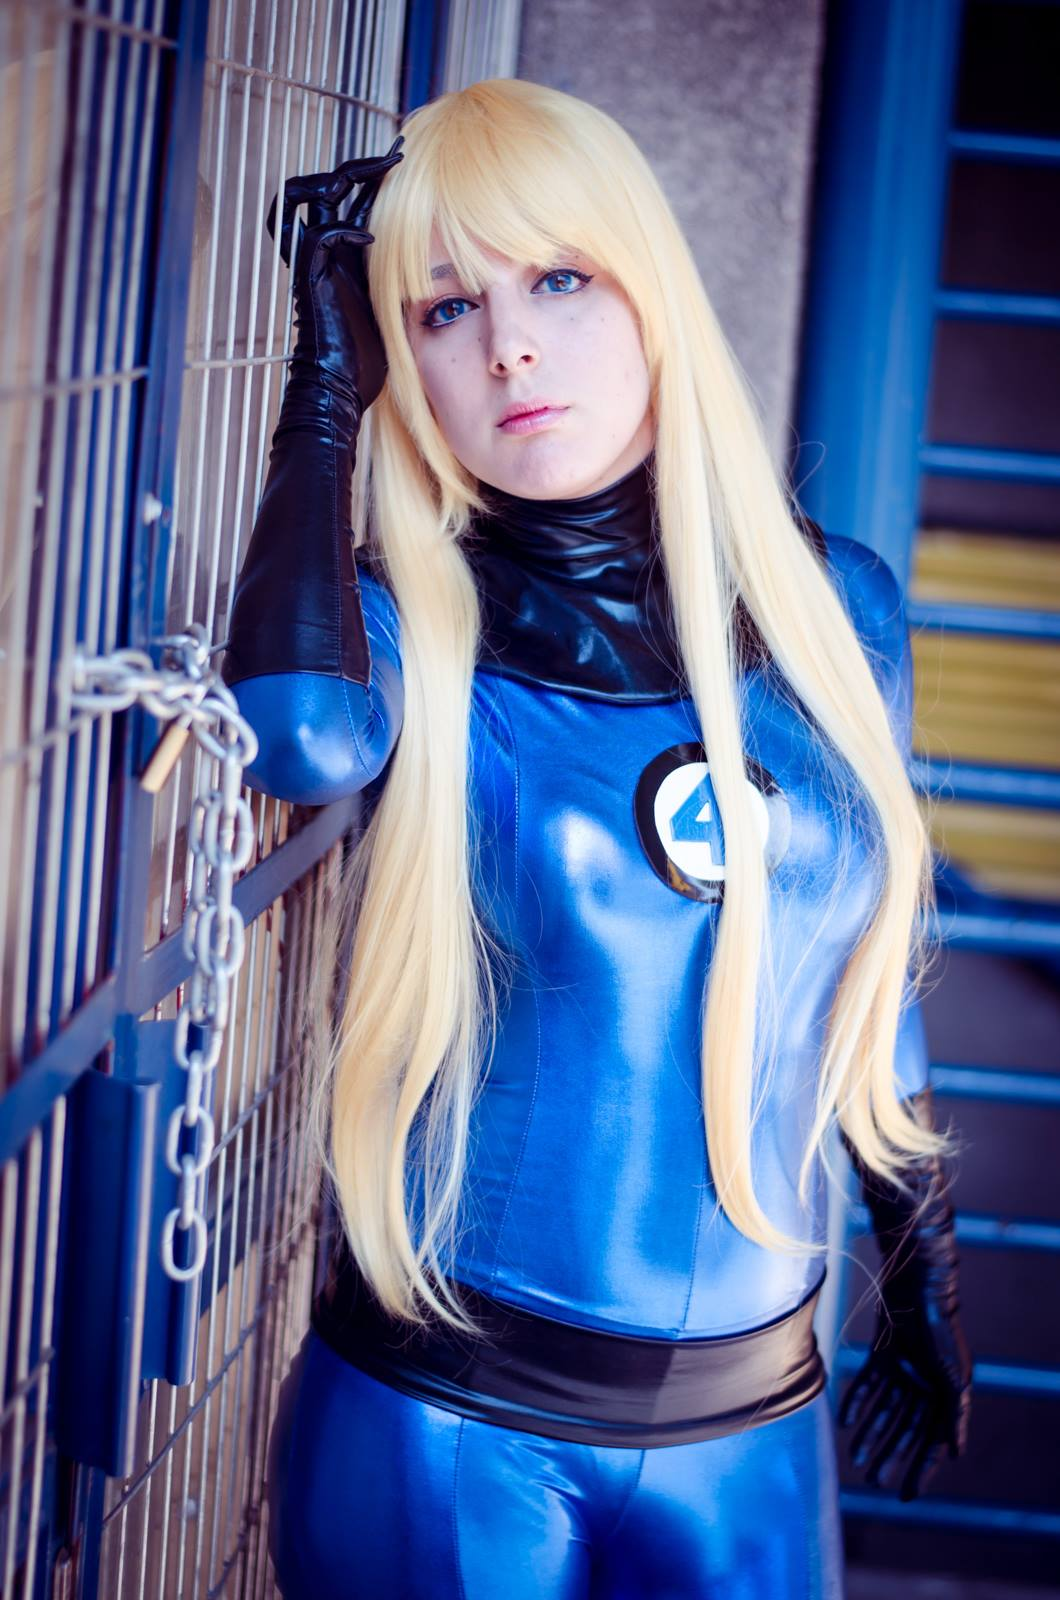 RingoxHitomi  is Invisible Woman | Photo by: Sou